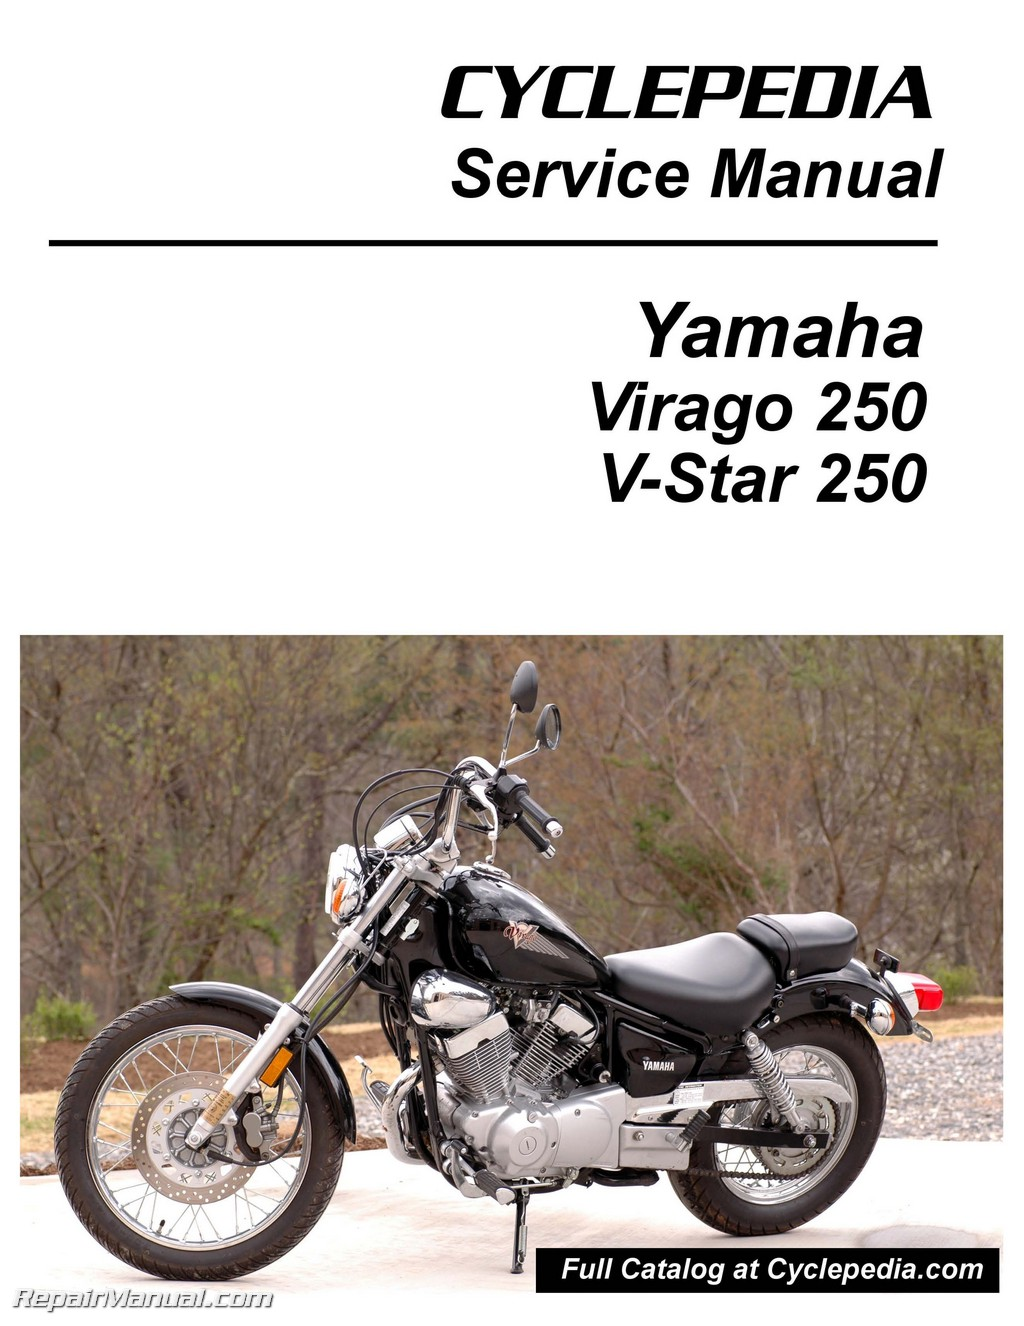 2004 Yamaha Xv 250 Pics Specs And Information Virago Wiring Diagram Images 91175